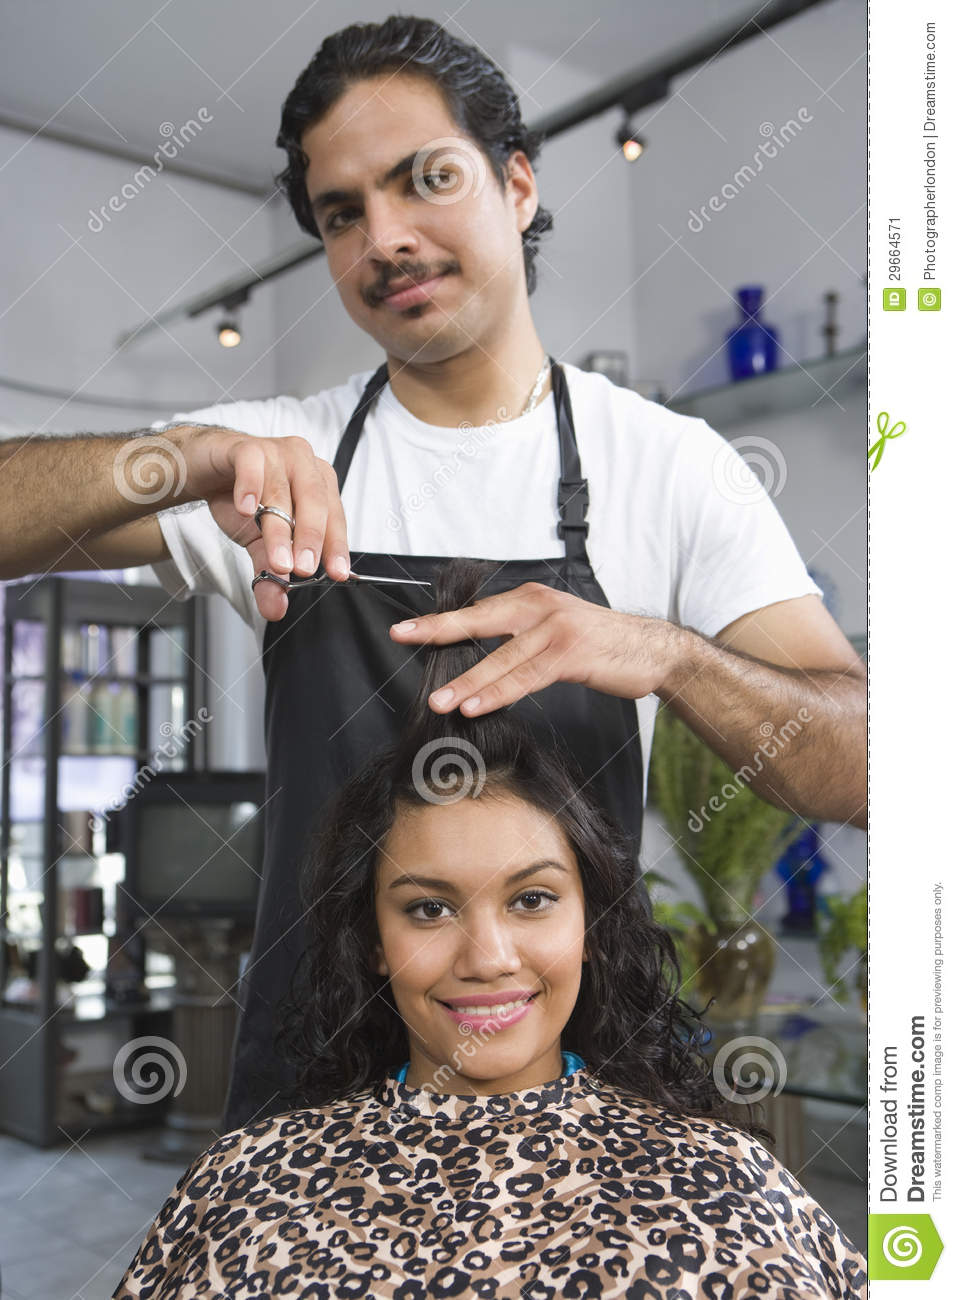 Barber Cutting Woman S Hair Stock Image Image Of Sitting People 29664571